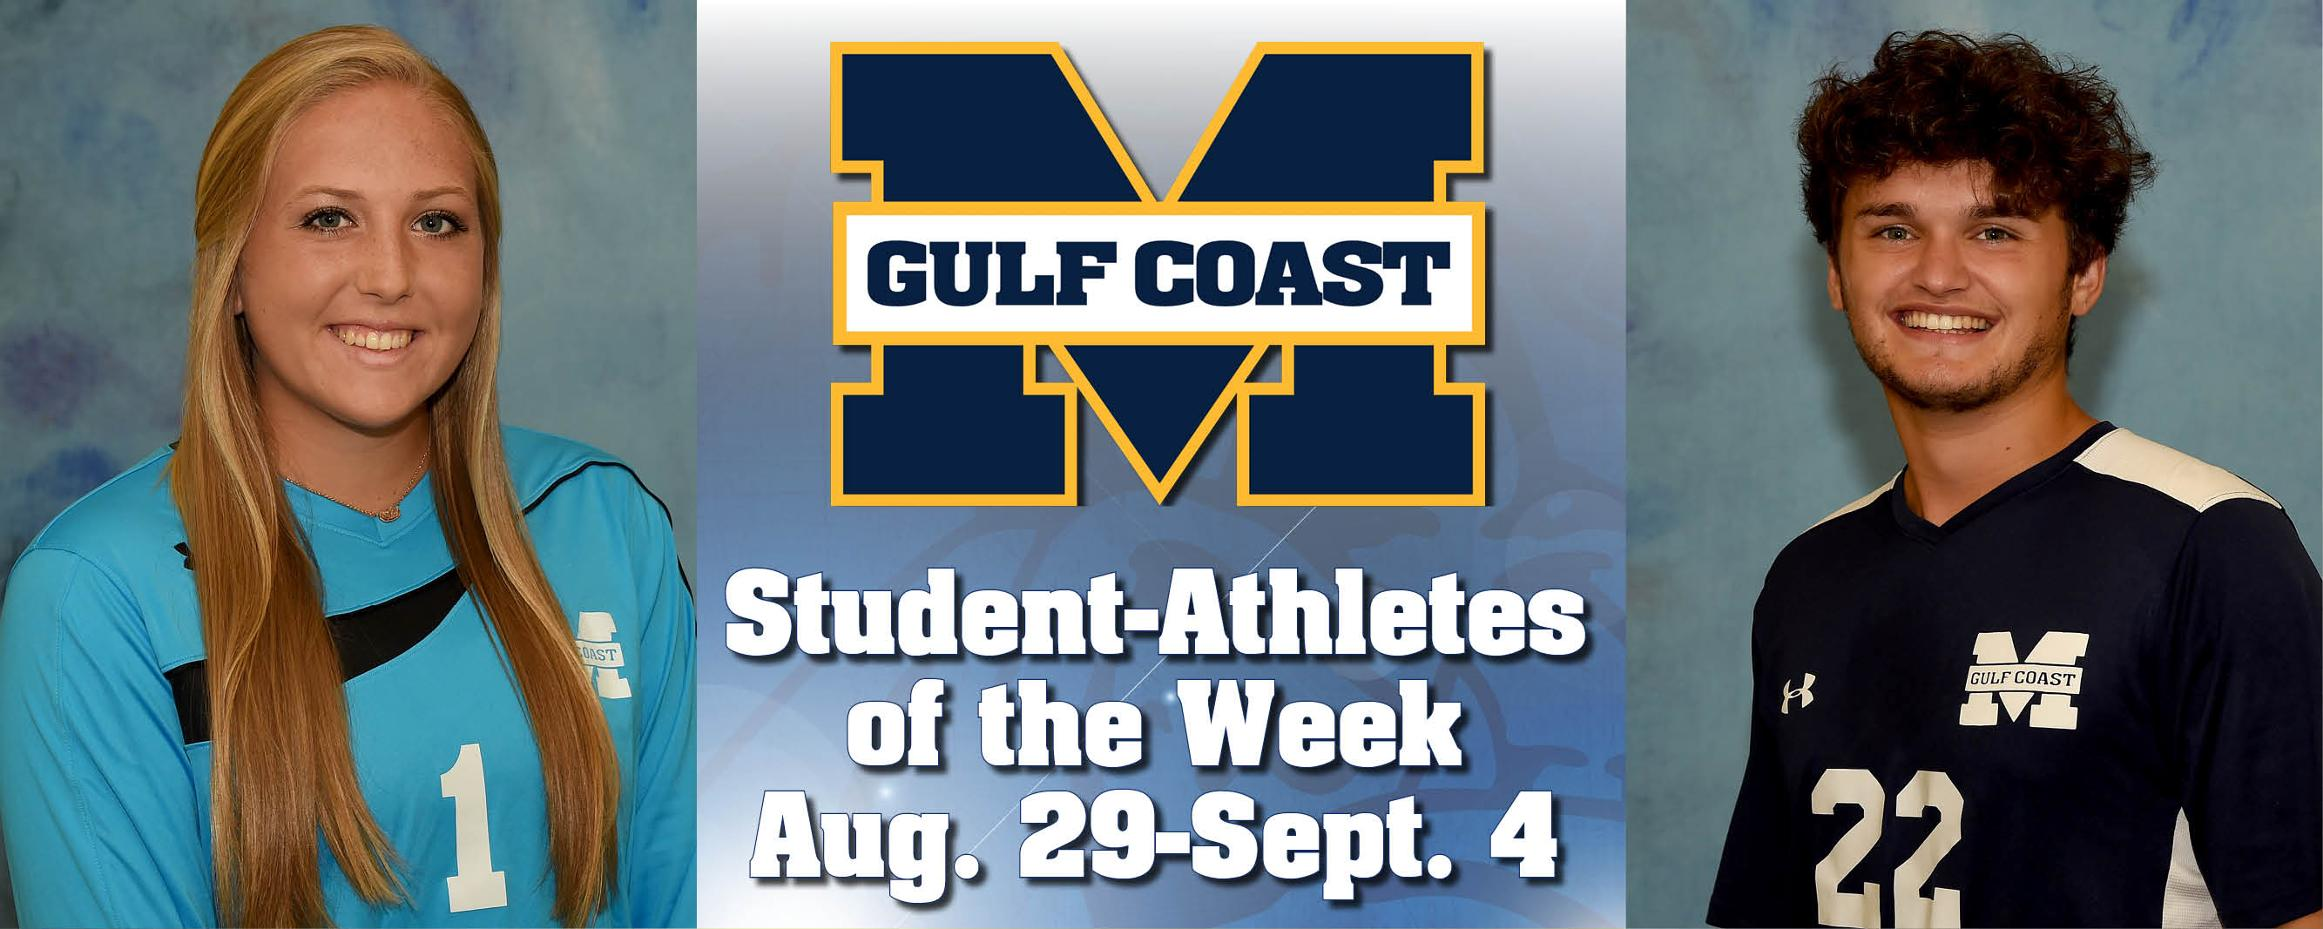 Walters, Beattie named MGCCC Student-Athletes of the Week